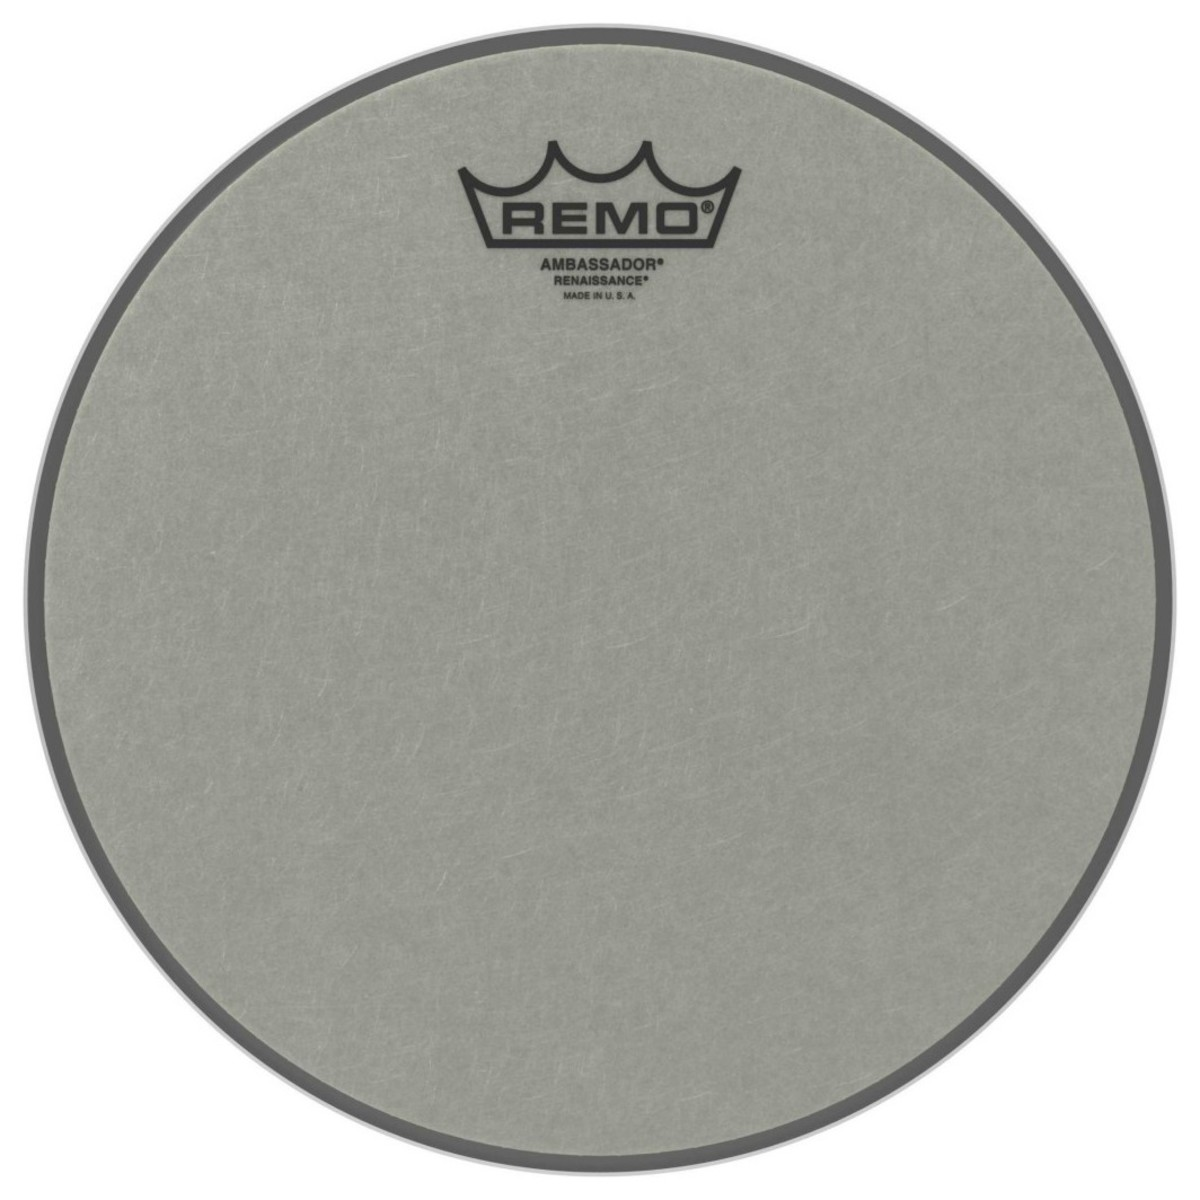 Click to view product details and reviews for Remo Ambassador Renaissance 10 Drum Head.